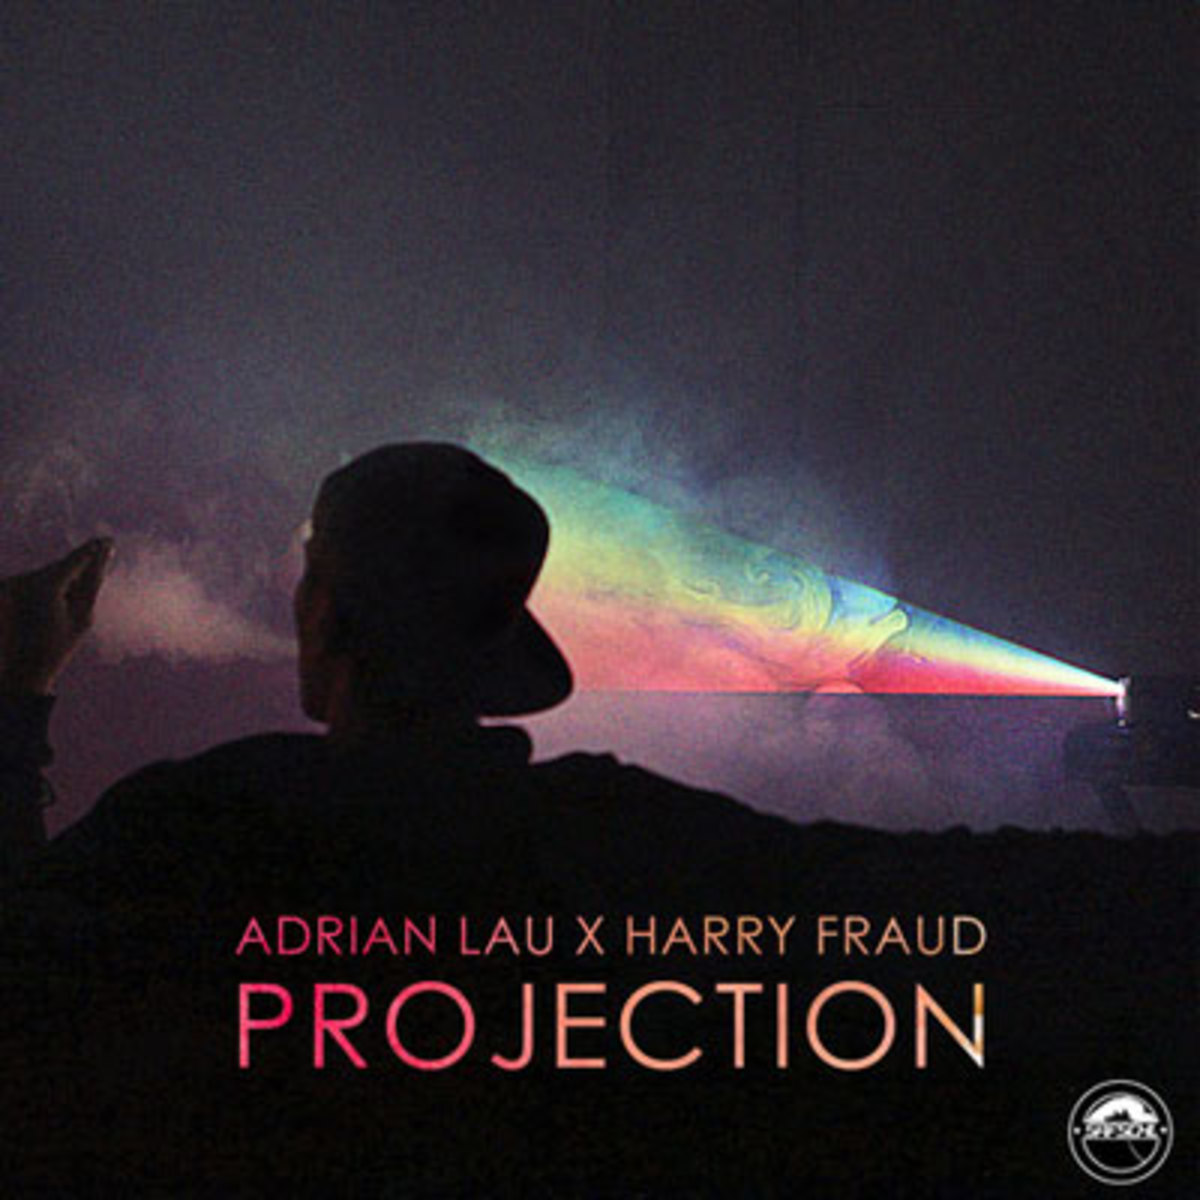 adrianlau-projection.jpg